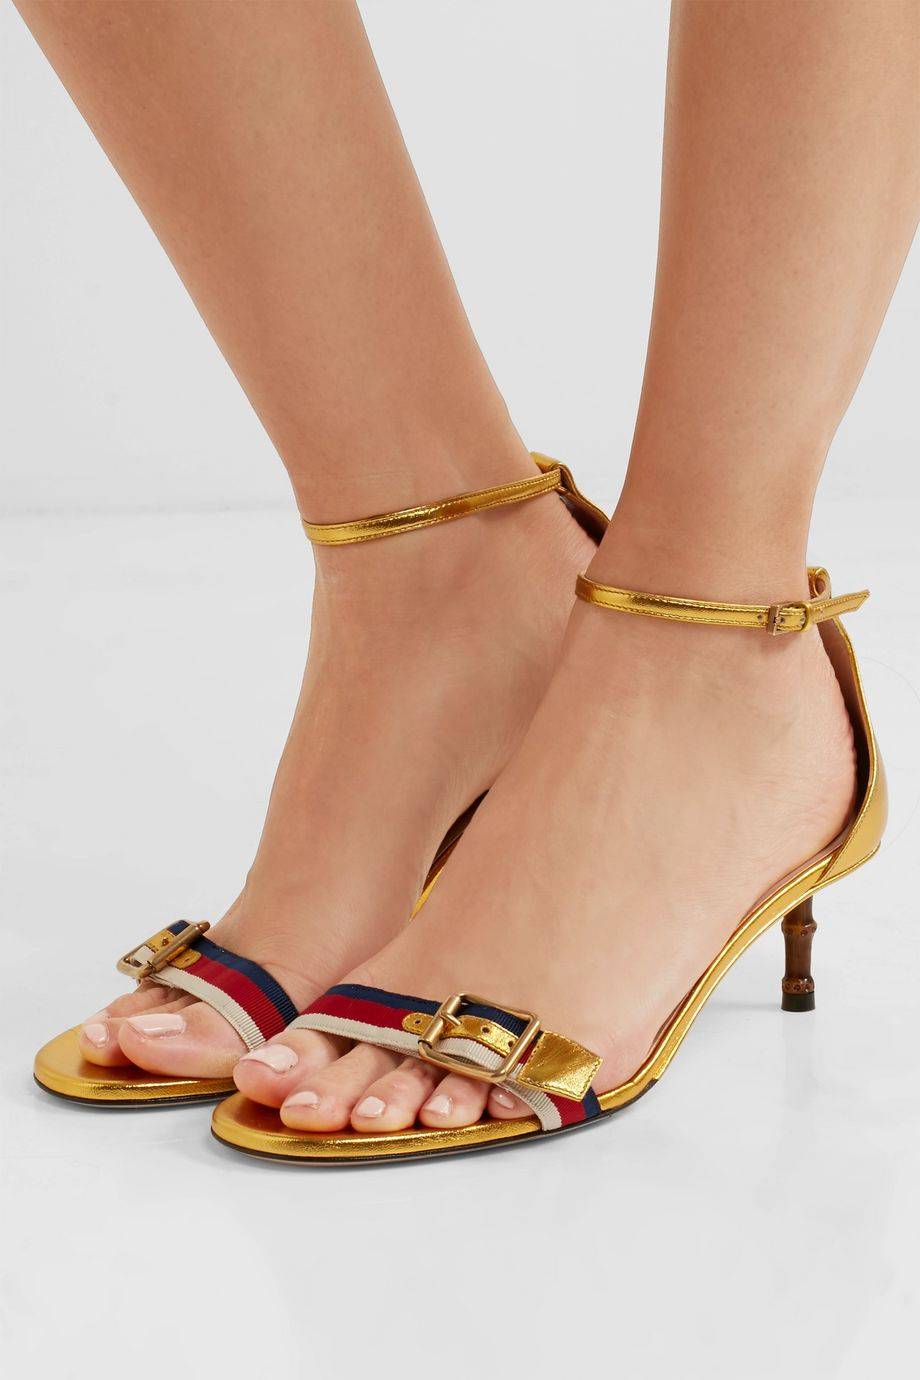 Gucci Sylvie grosgrain-trimmed metallic leather sandals